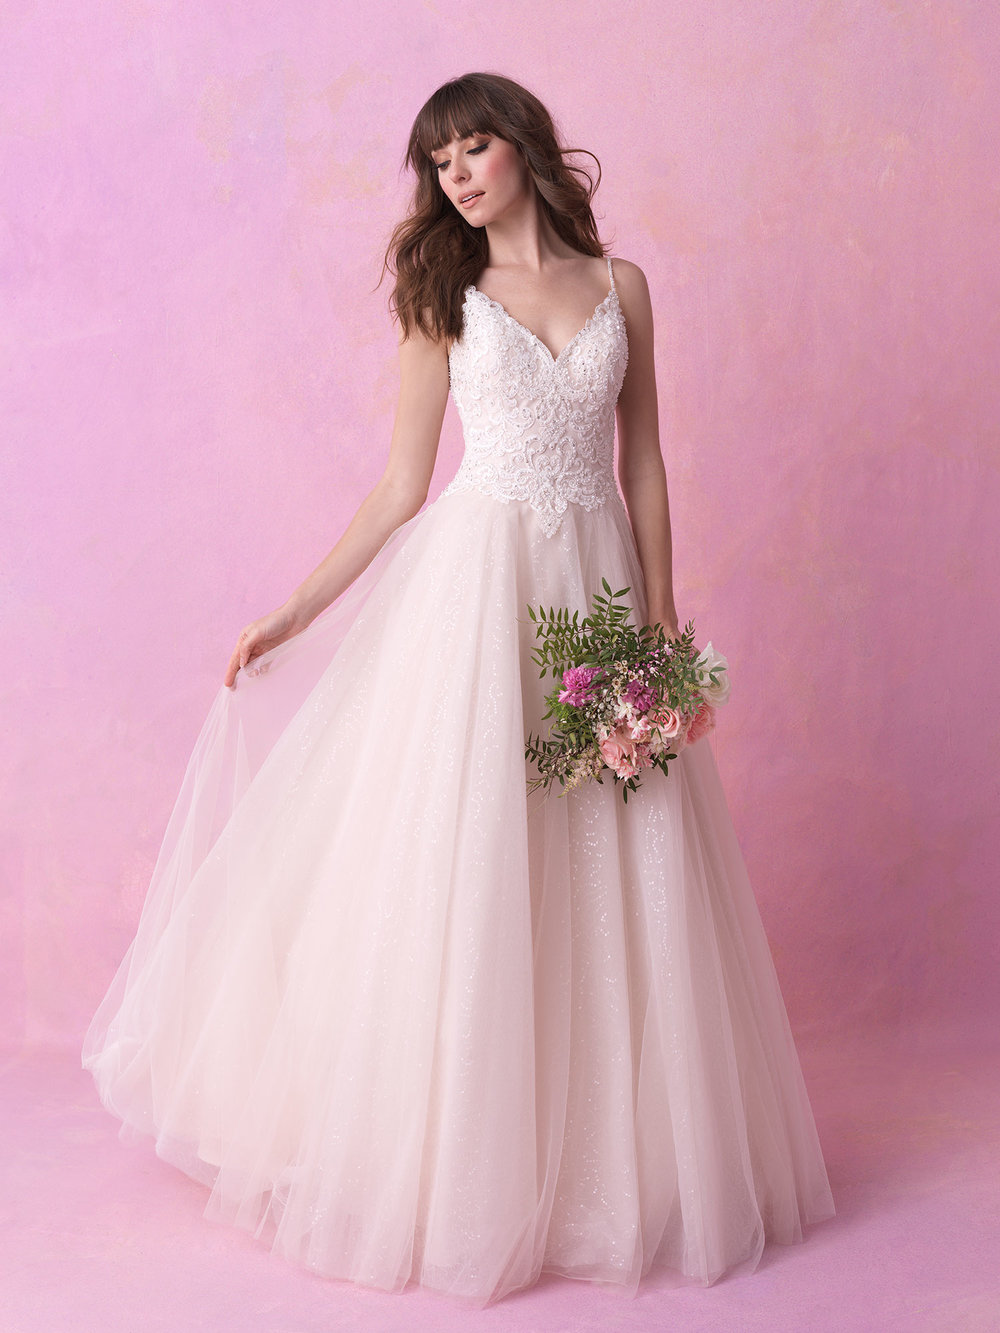 Style: 3150 - Sparkling tulle and embroidered beading accent this strappy ballgown.